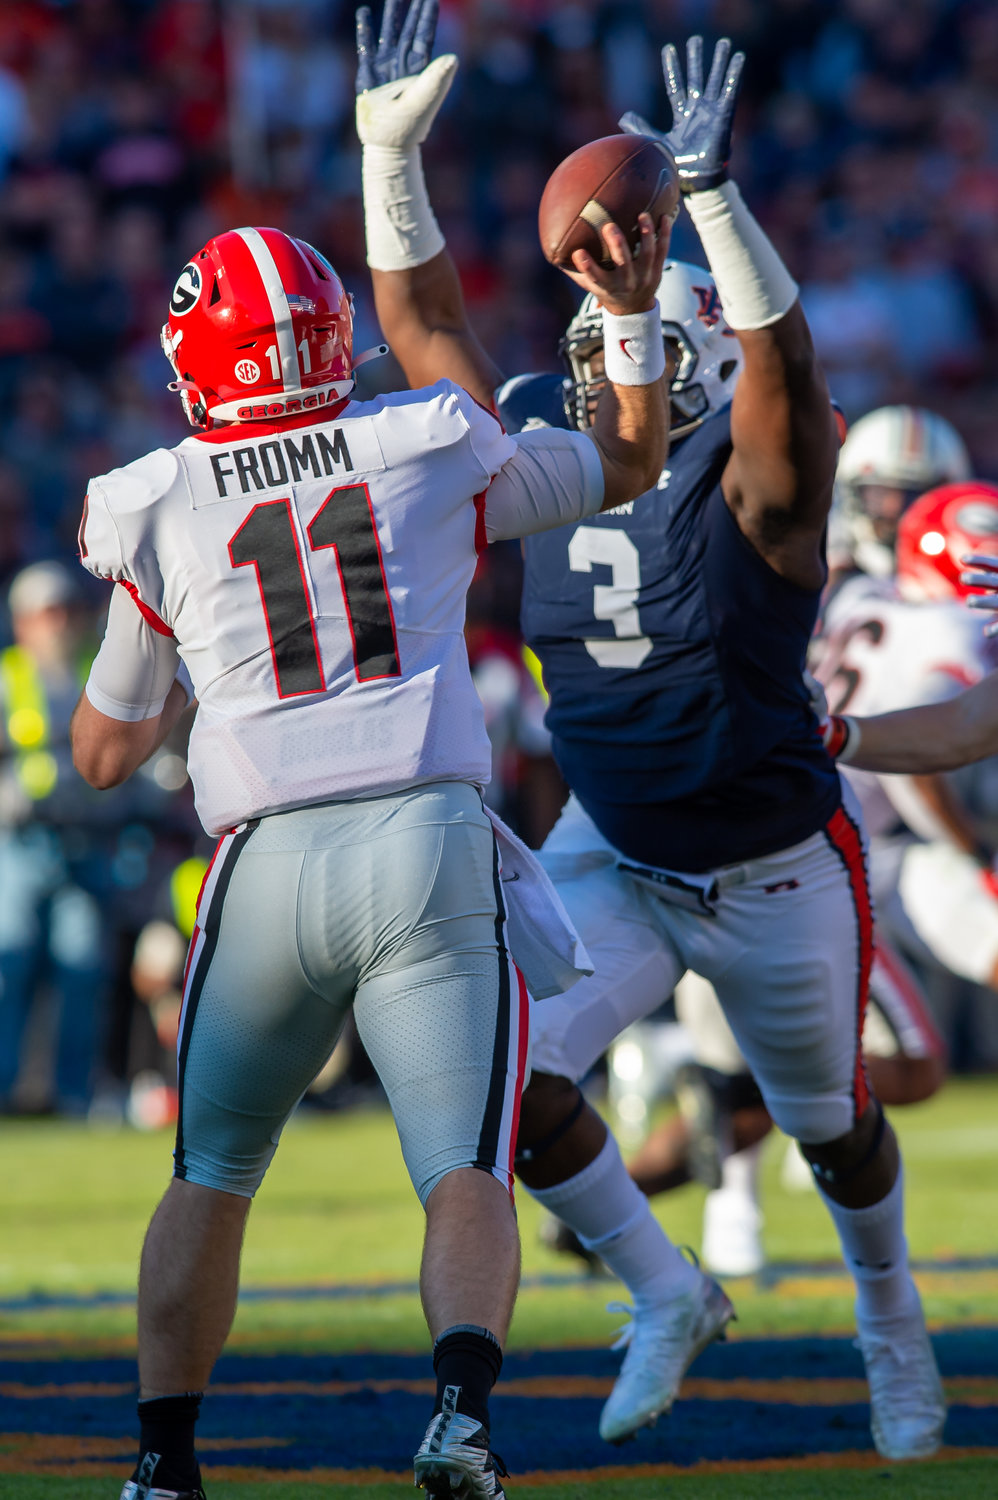 Georgia Bulldogs quarterback Jake Fromm (11) is pressured by Auburn Tigers defensive end Marlon Davidson (3) during the first half of Saturday's game, at Jordan-Hare Stadium in Auburn,, AL. Daily Mountain Eagle -  Jeff Johnsey